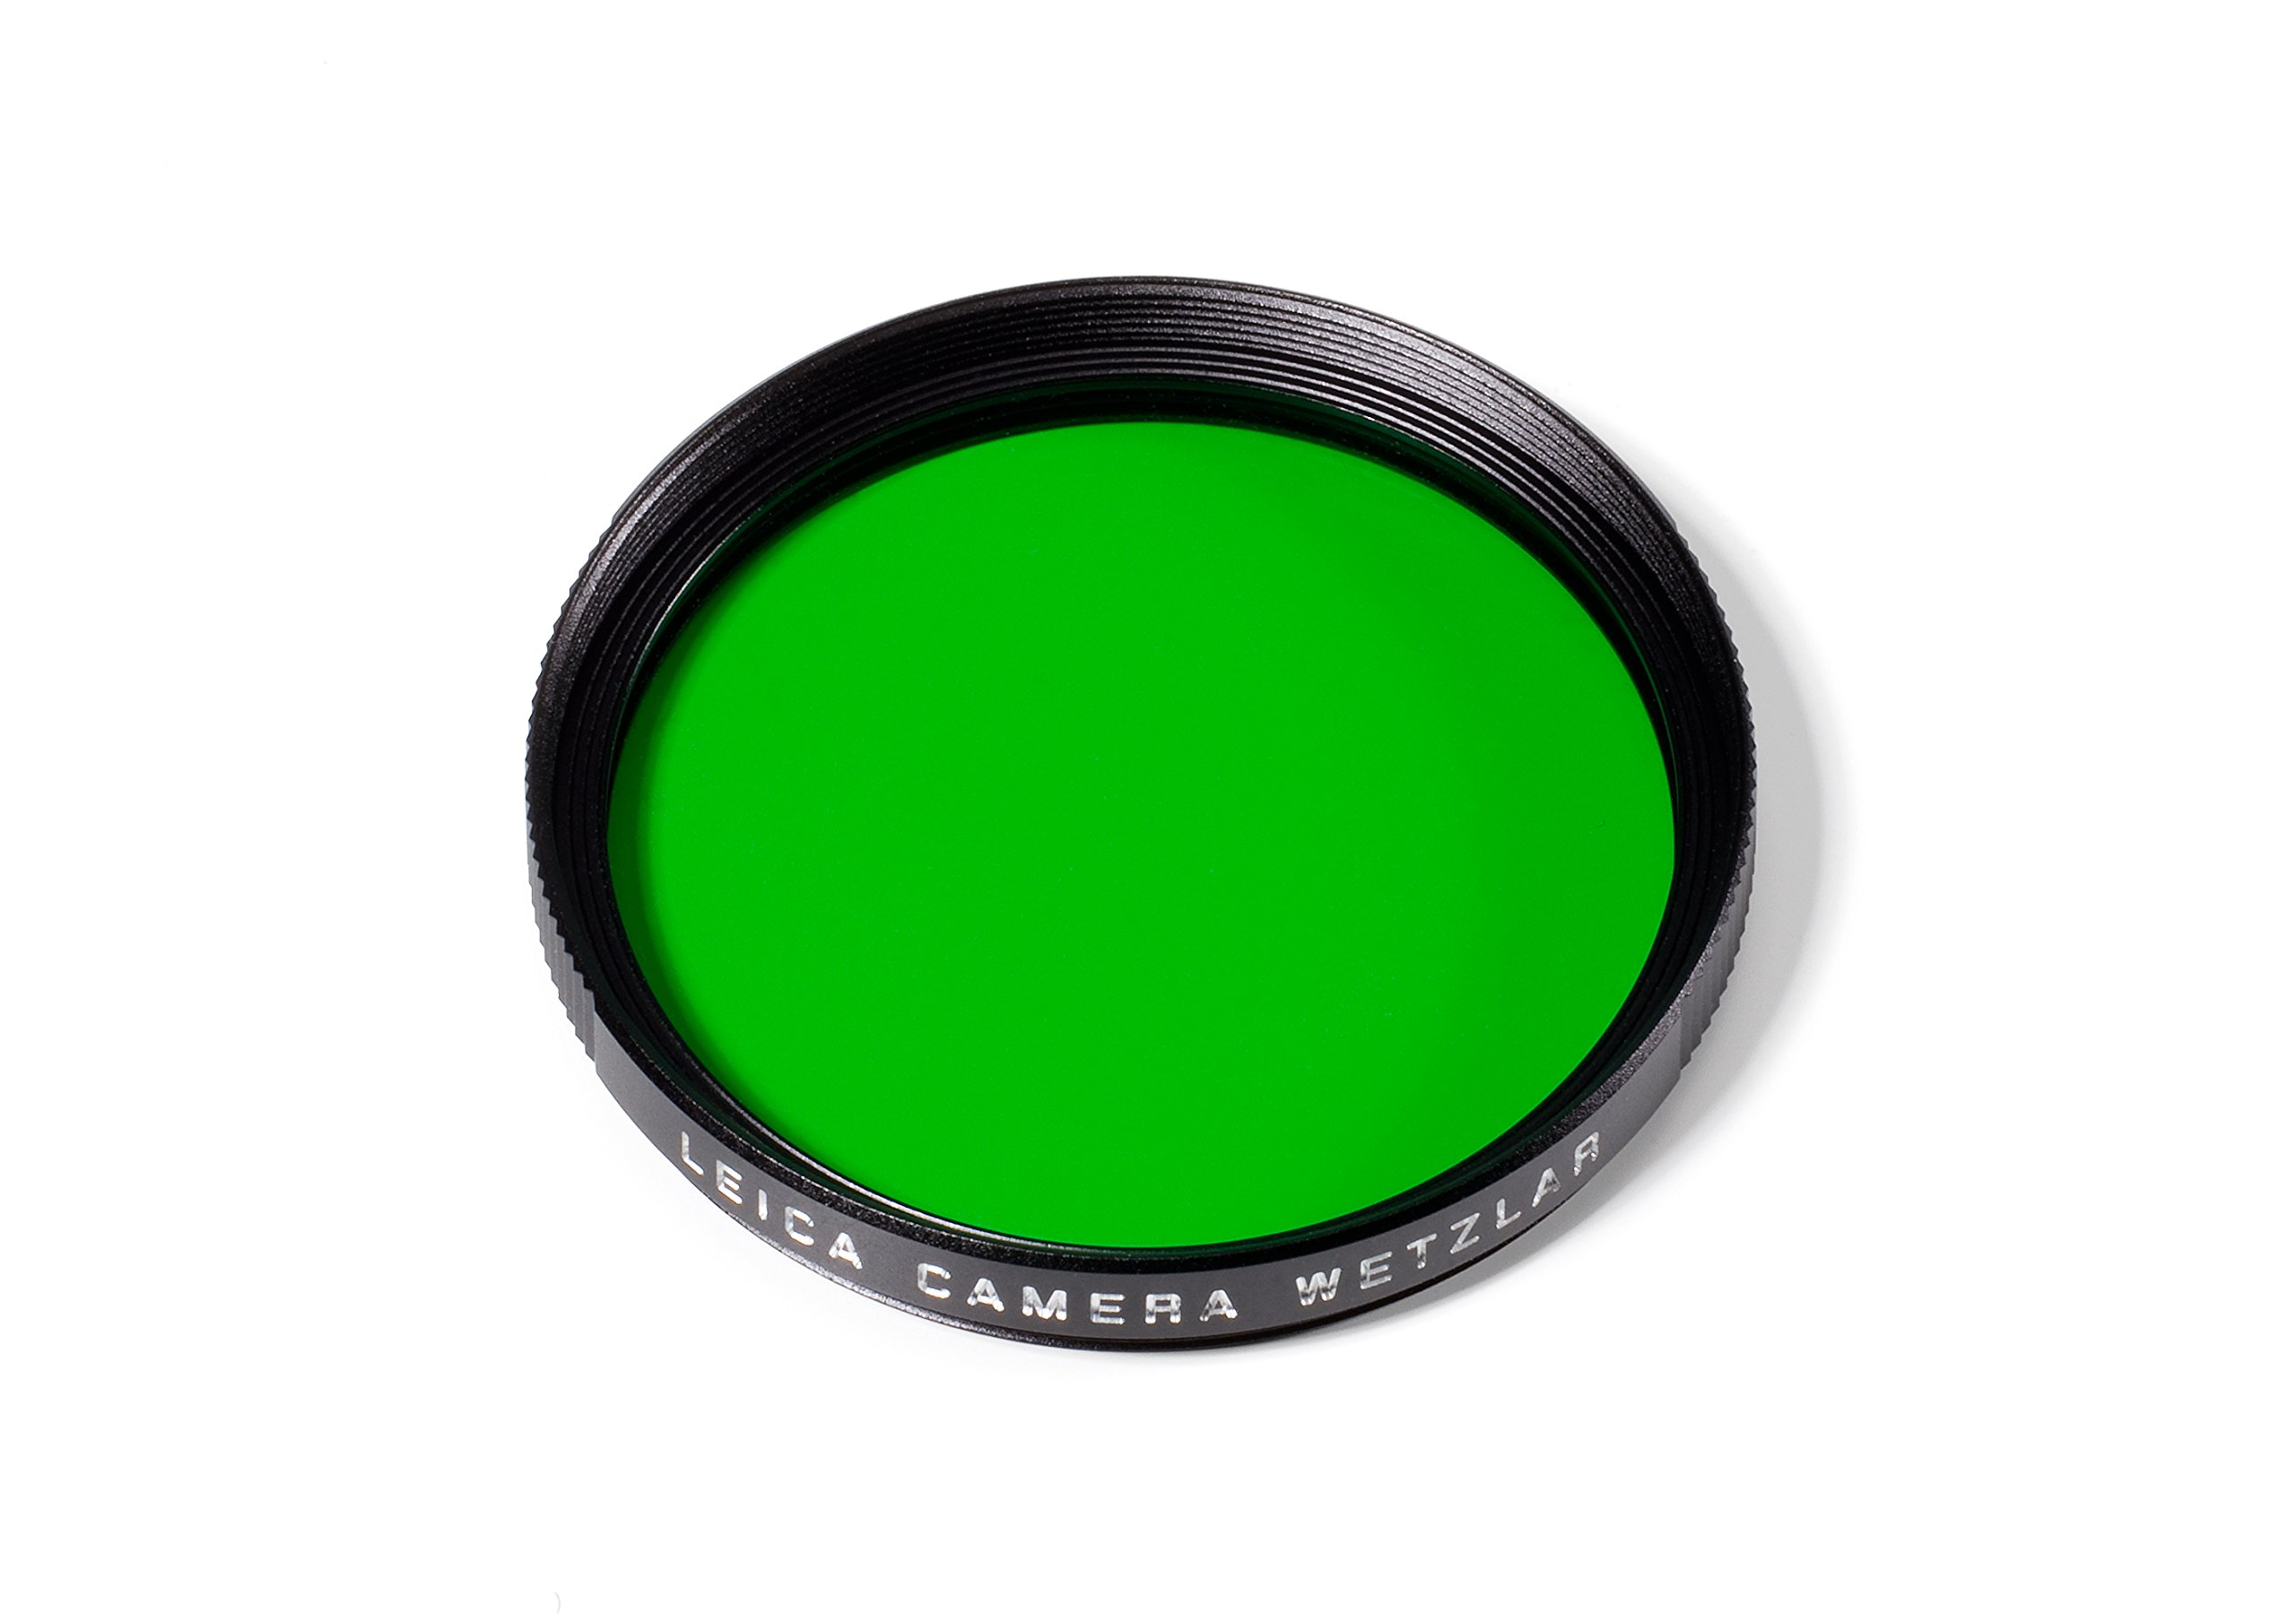 Leica 13063 39 Camera Lens Color Correction and Compensation Filters by Leica